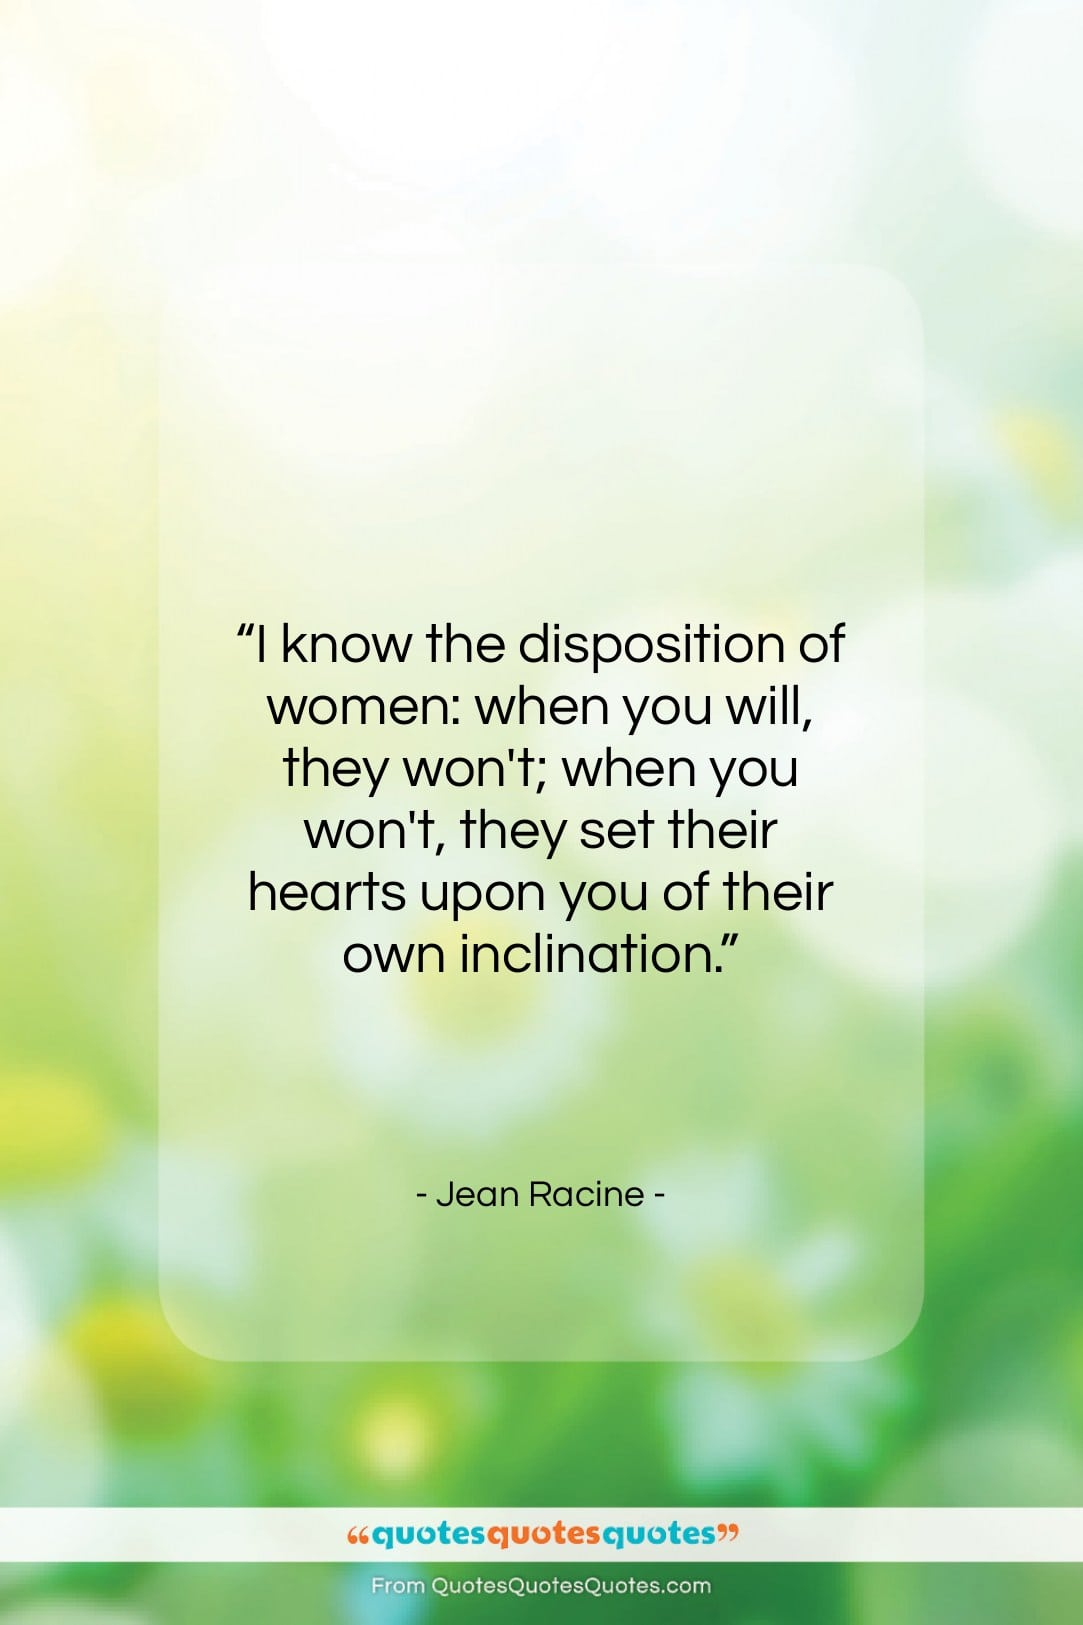 """Jean Racine quote: """"I know the disposition of women: when…""""- at QuotesQuotesQuotes.com"""